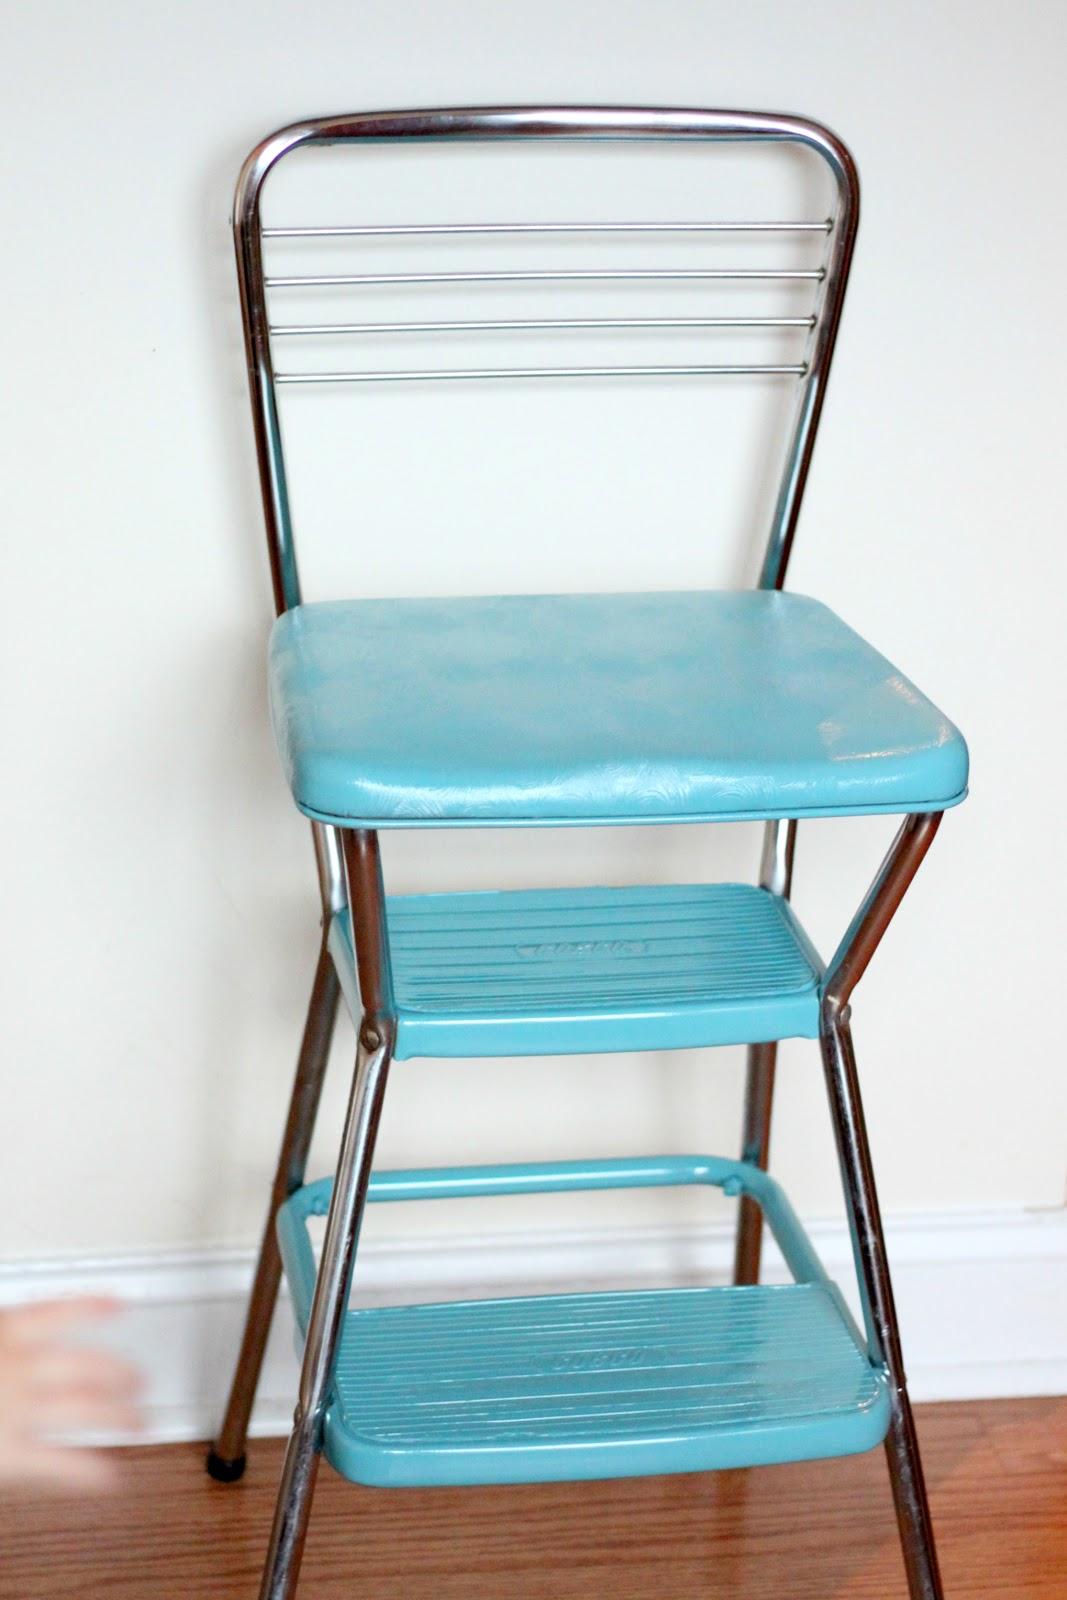 chair step stool chairs for babies room vintage makeover photo prop alida makes